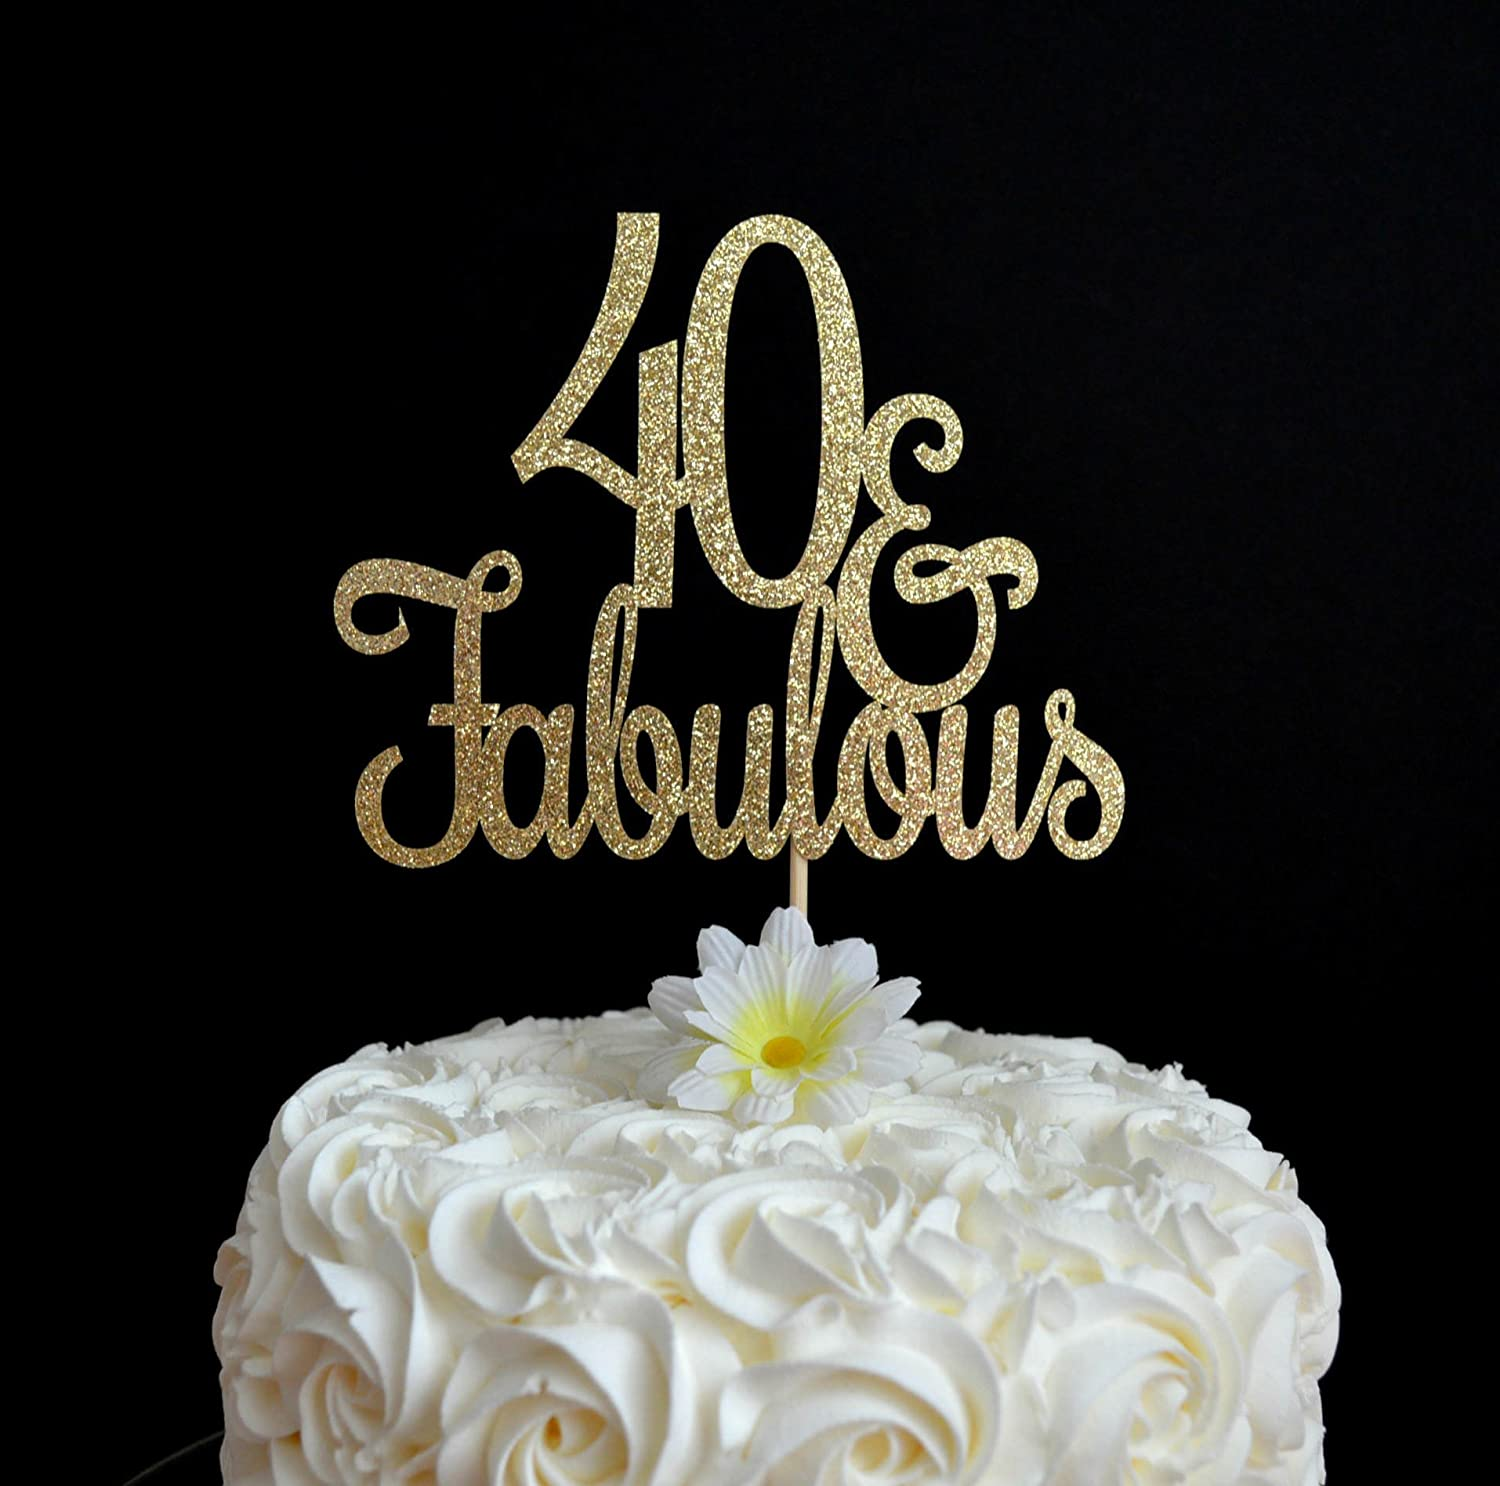 40 Fabulous Cake Topper Glitter Birthday 40th Party Decoration And Adult Milestone For Men Women